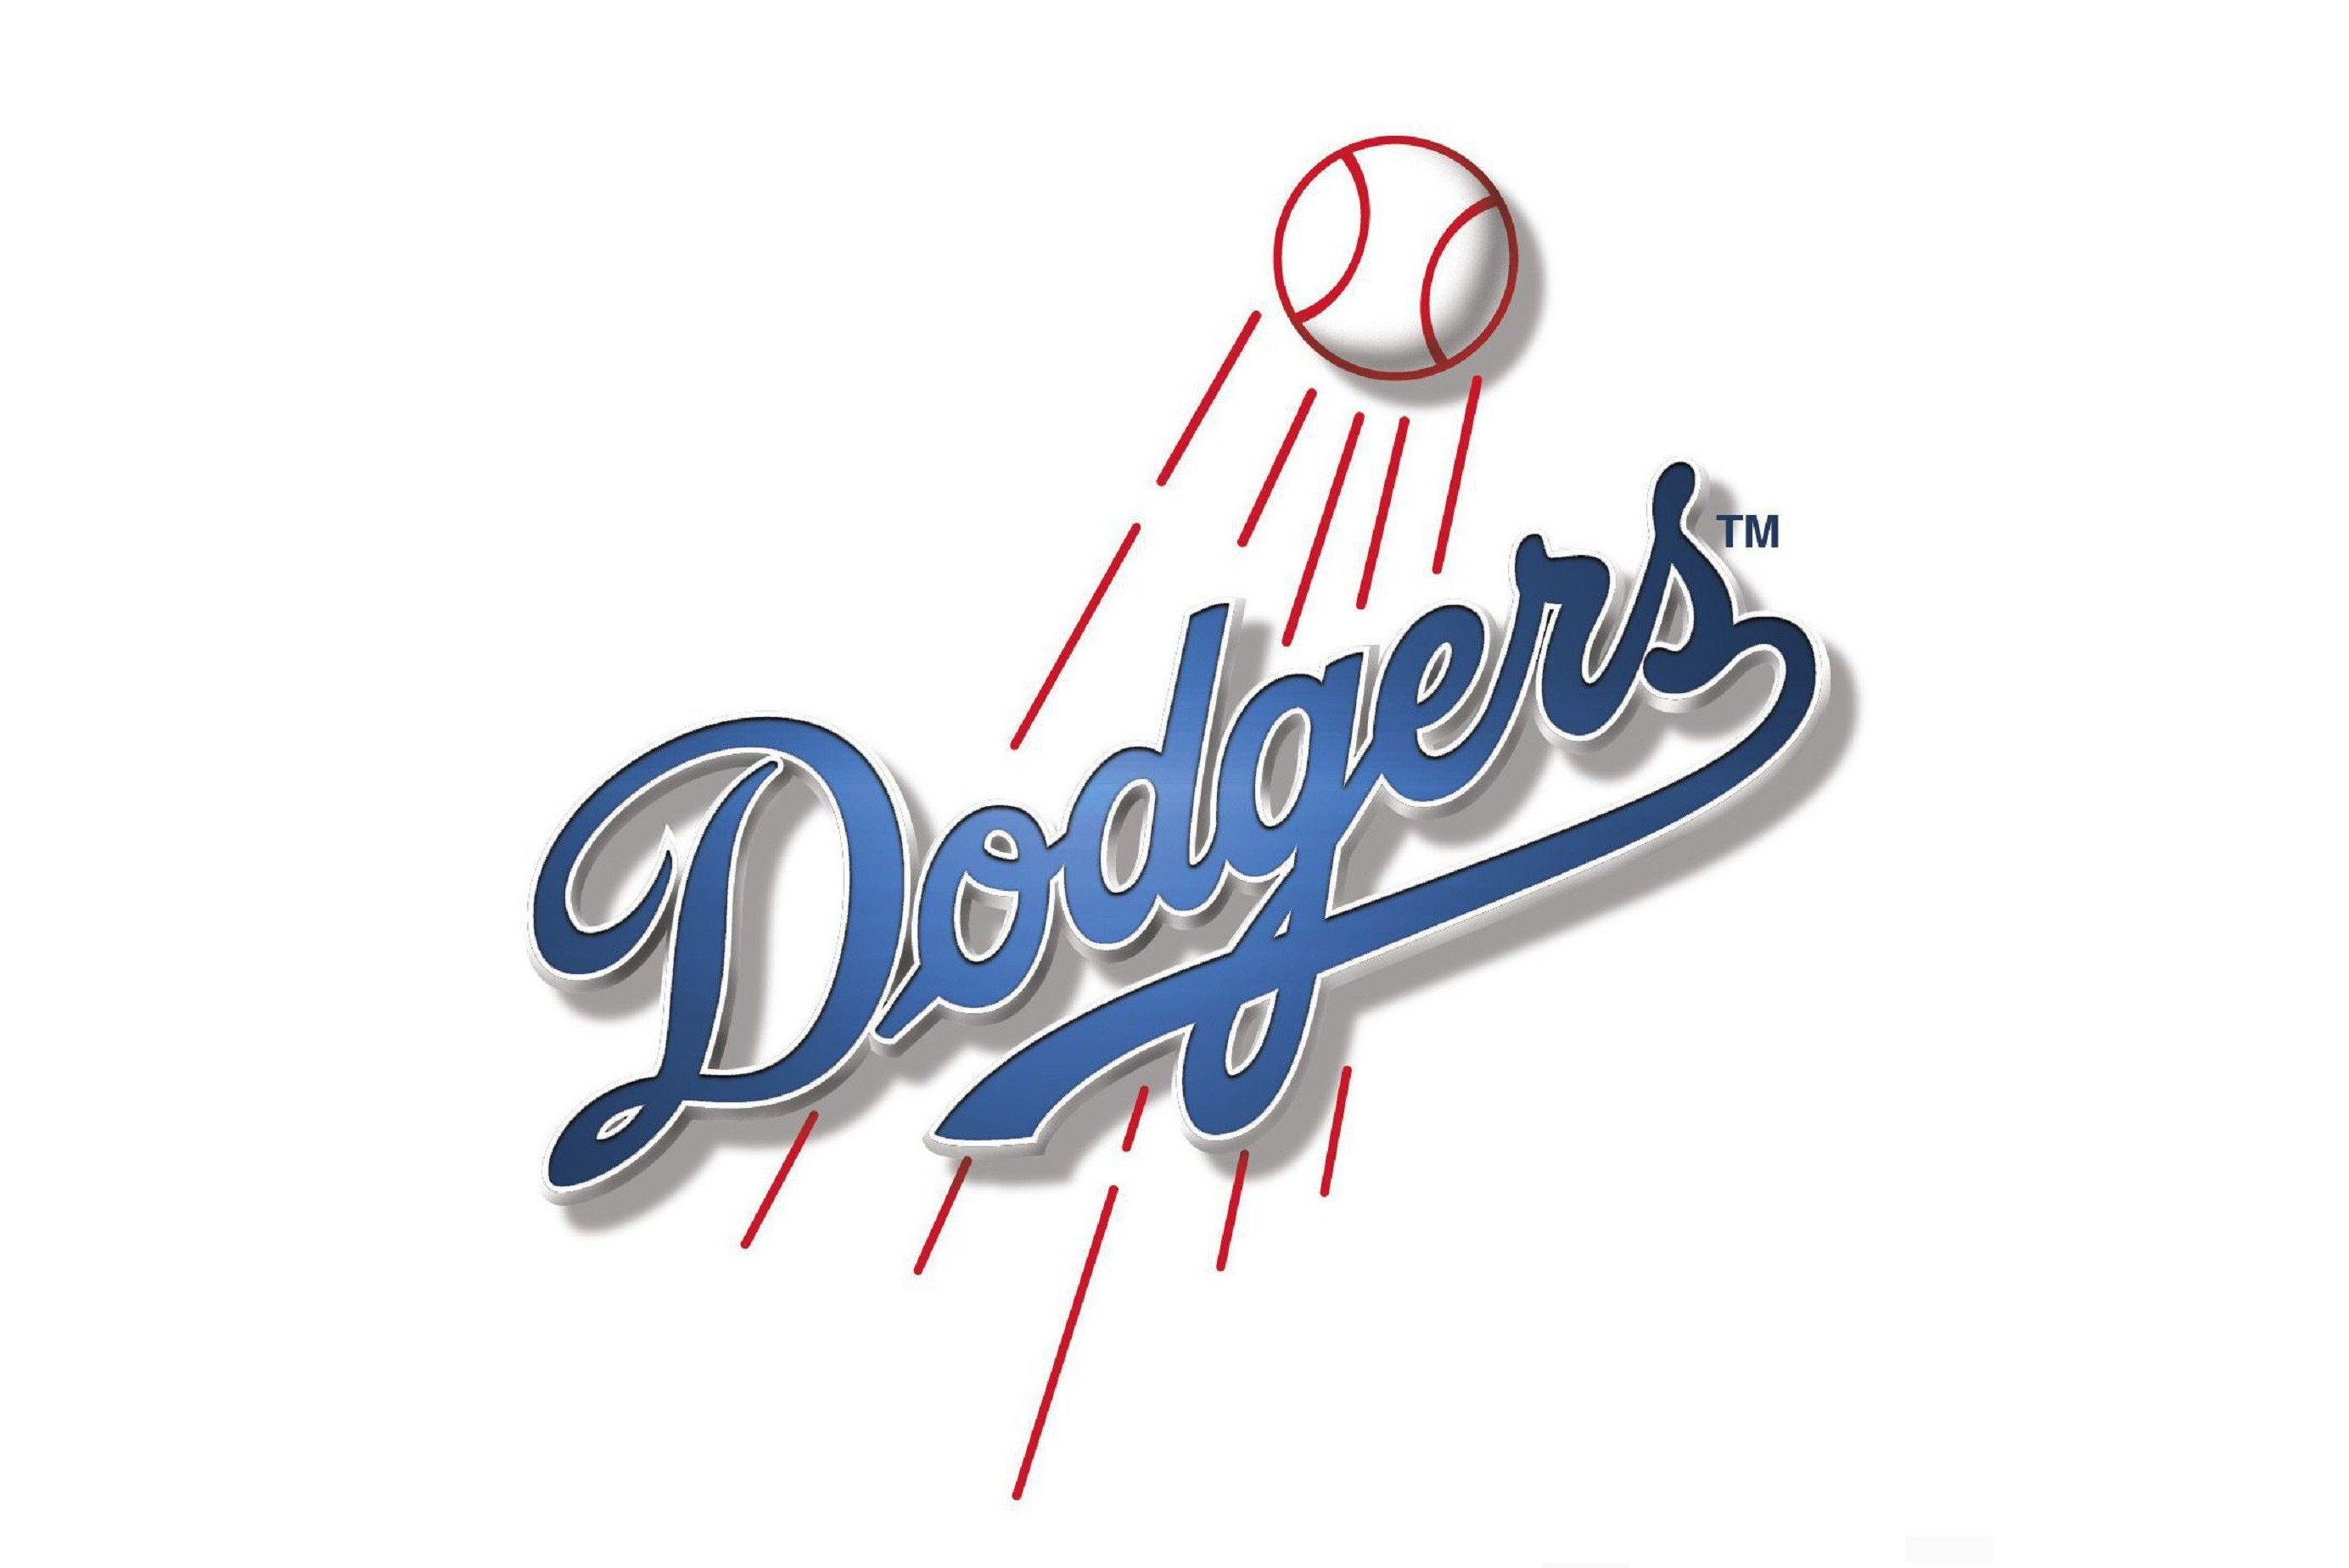 dodgers wallpaper 183�� download free hd backgrounds for